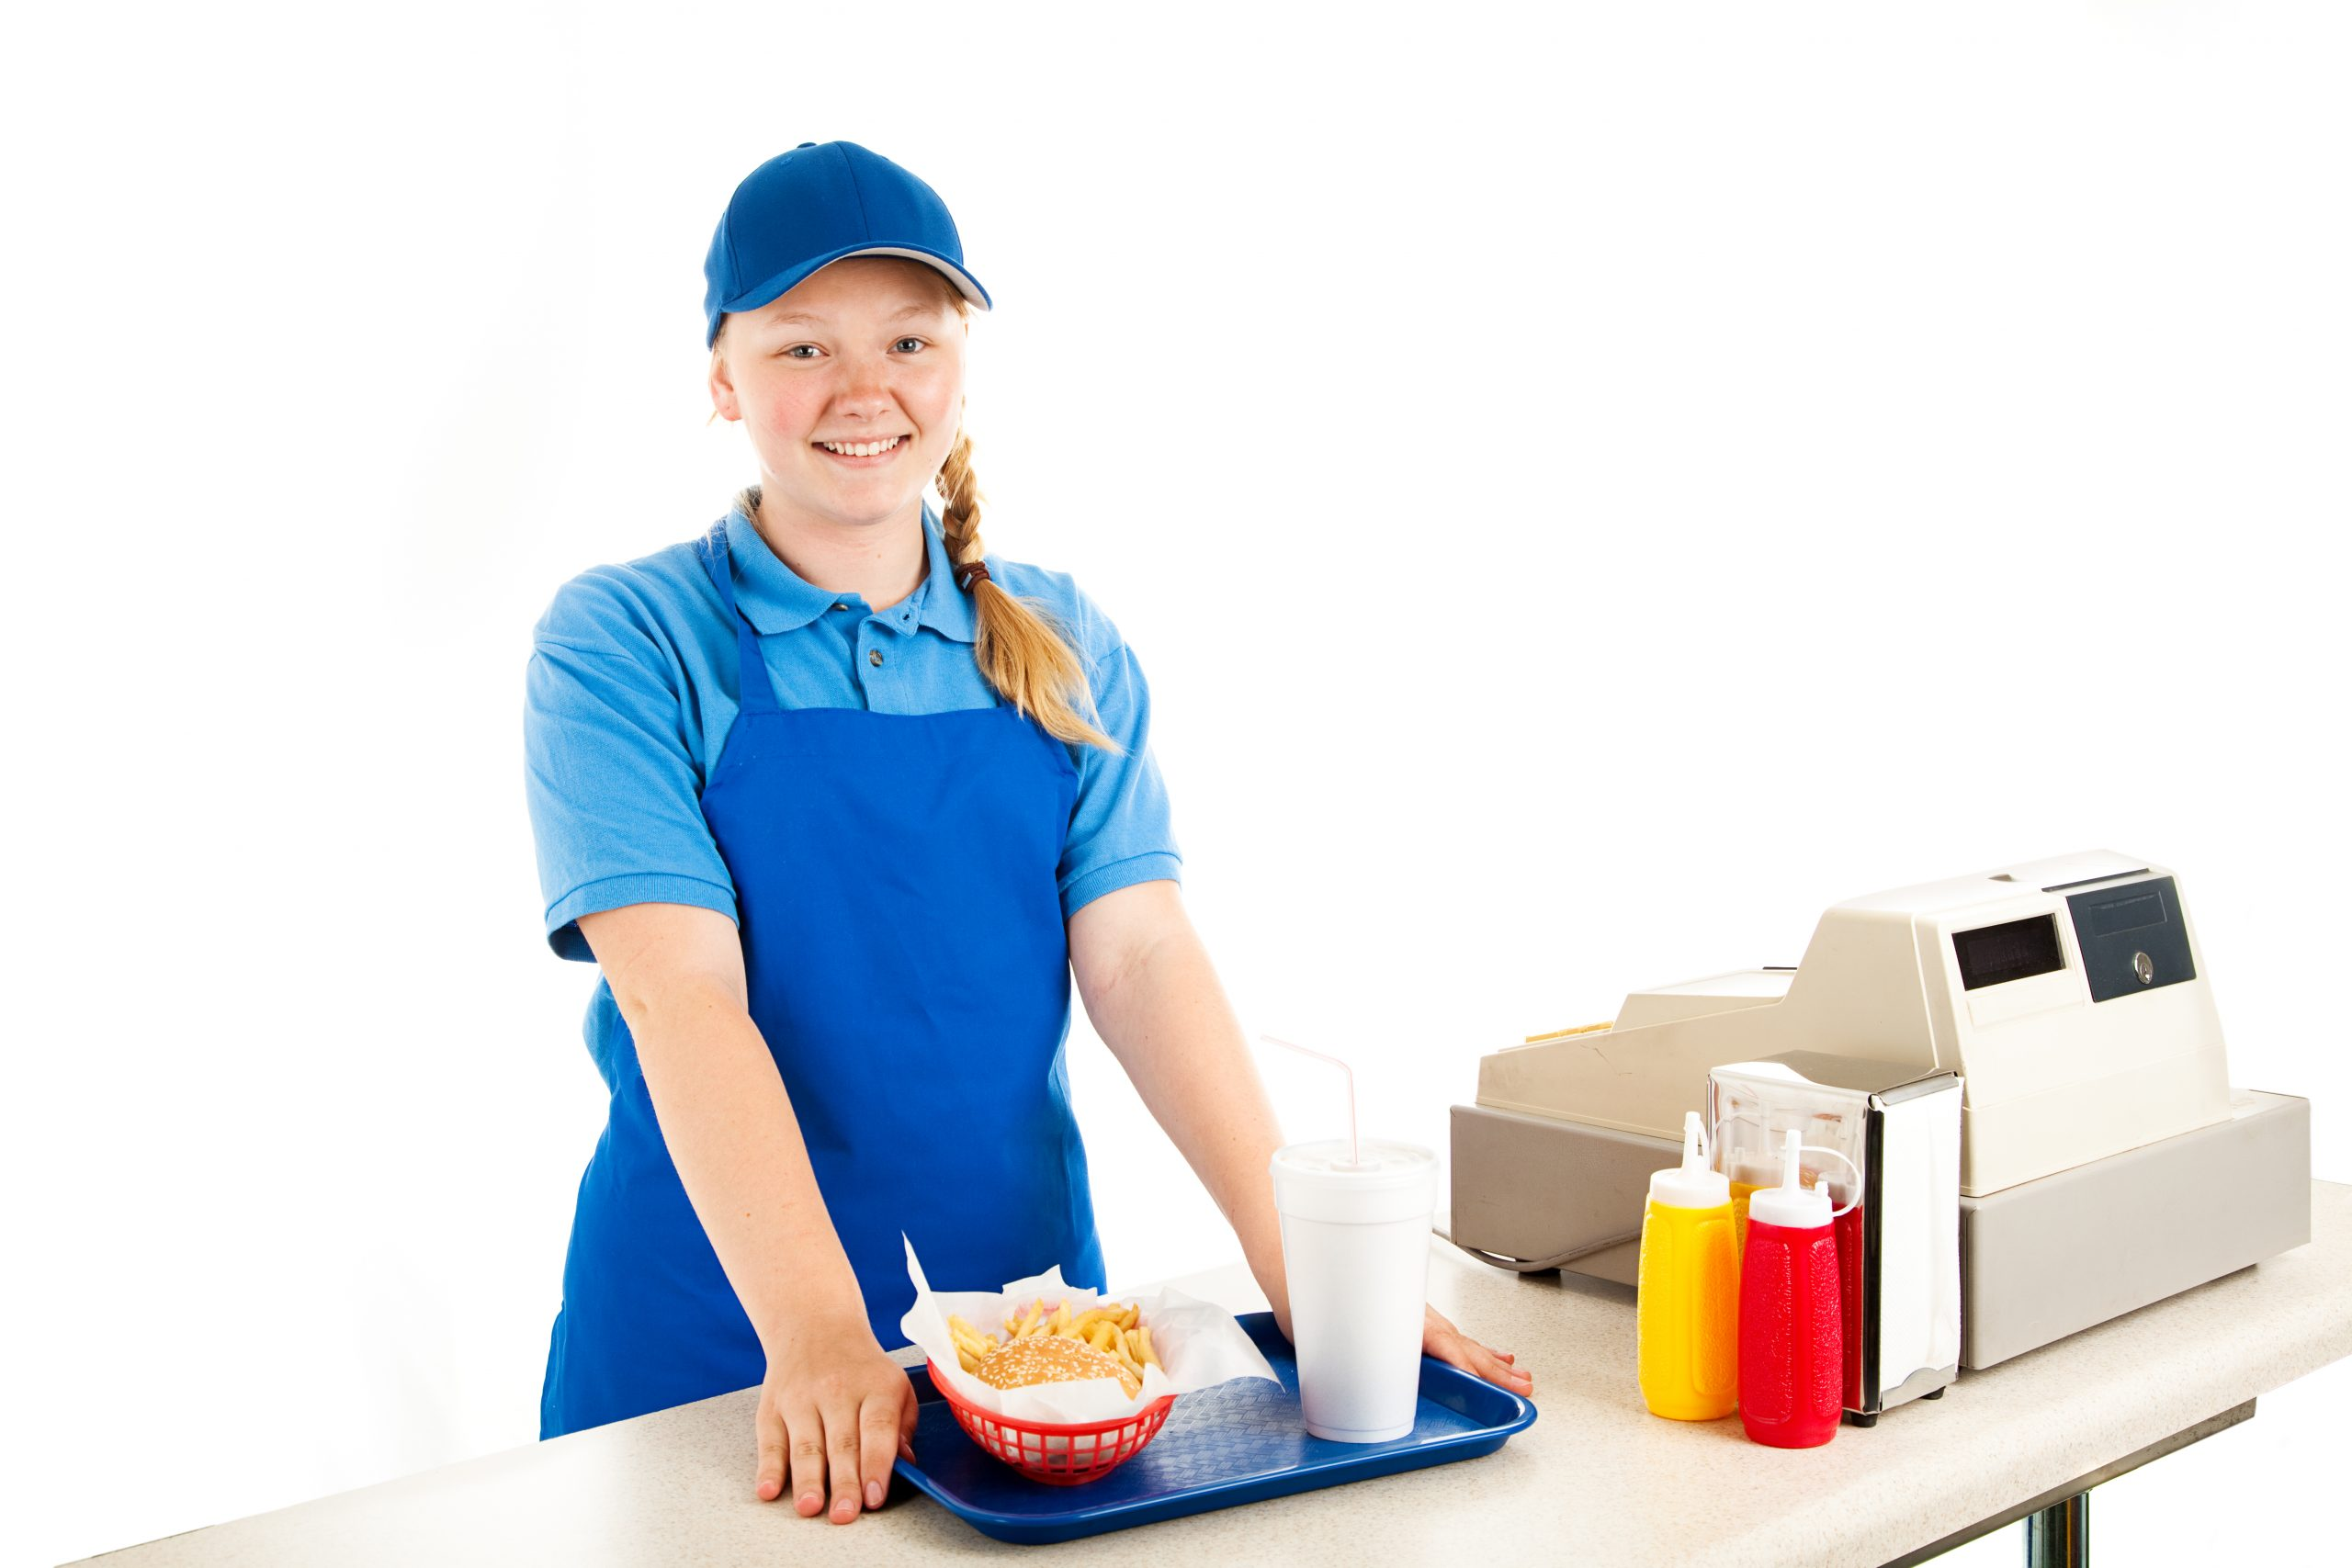 Employing teenagers in your store? Here's some helpful advice from RGDATA